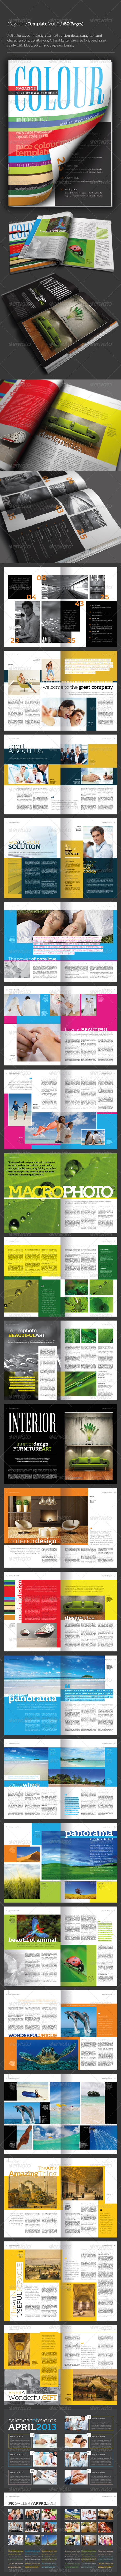 GraphicRiver InDesign Magazine Template Vol 09 50 pages 4305886